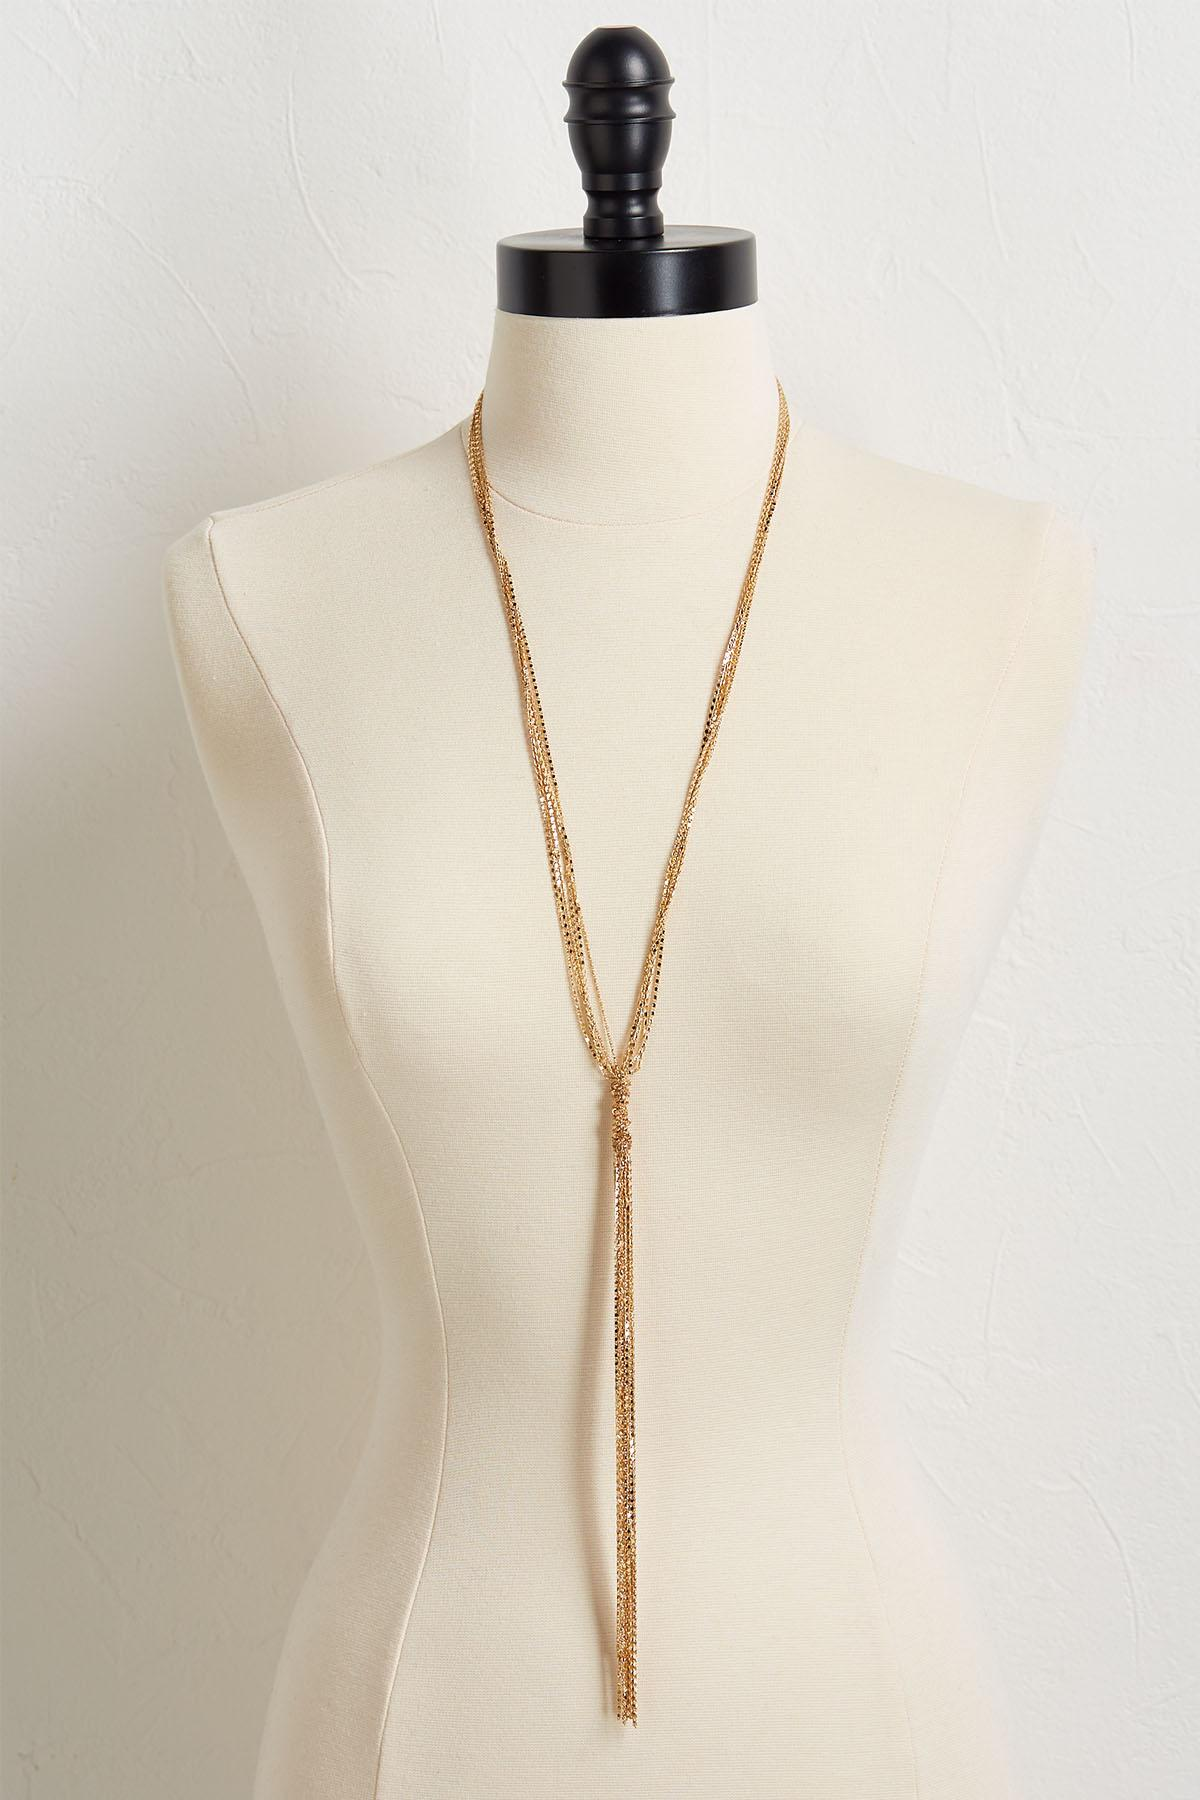 Tasseled Metal Chain Y- Necklace